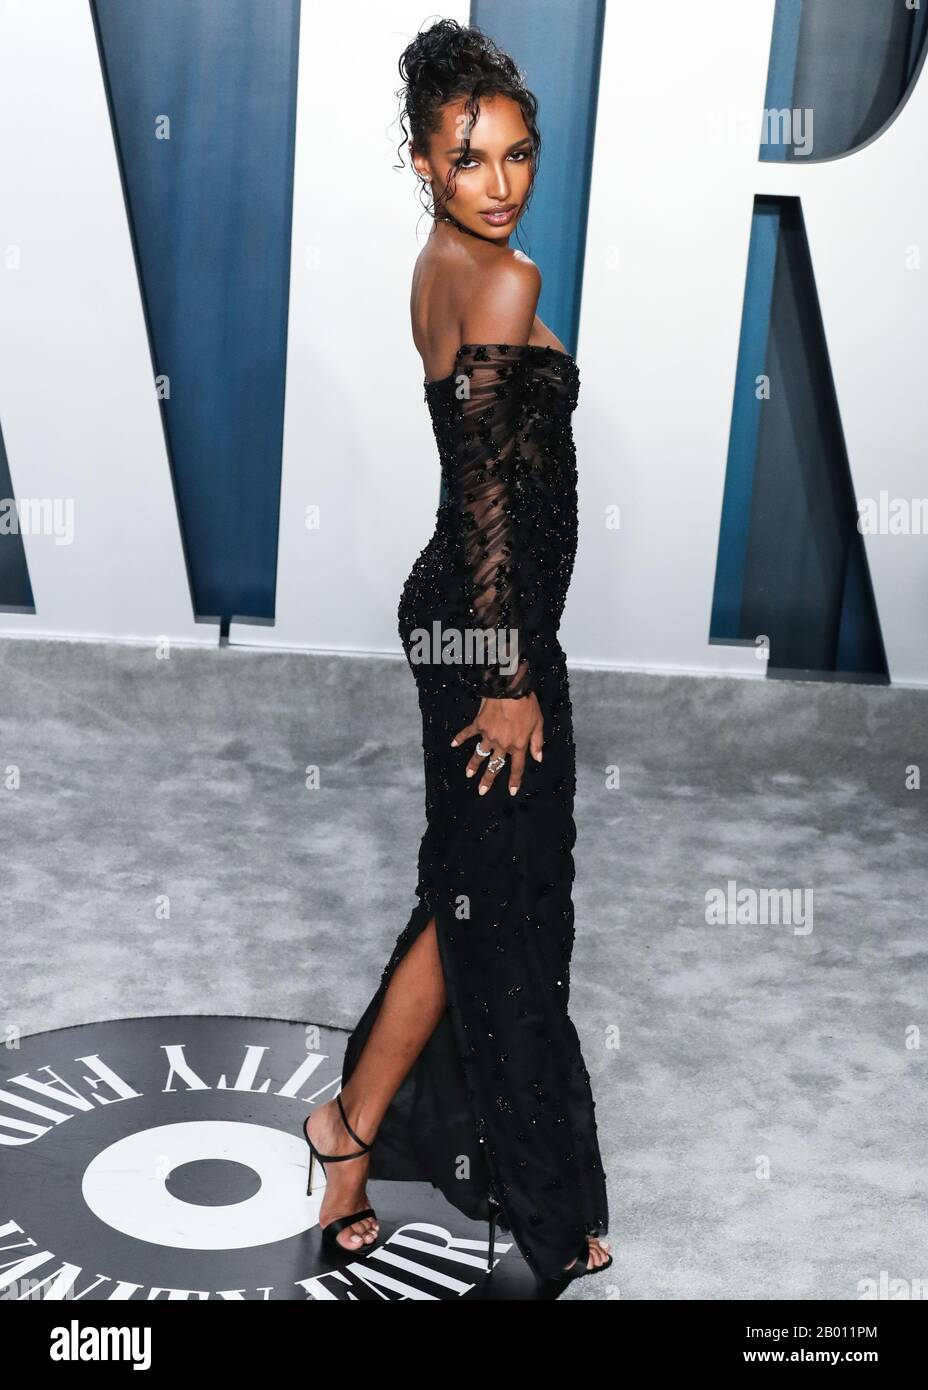 Beverly Hills Los Angeles California Usa February 09 Model Jasmine Tookes Arrives At The 2020 Vanity Fair Oscar Party Held At The Wallis Annenberg Center For The Performing Arts On February